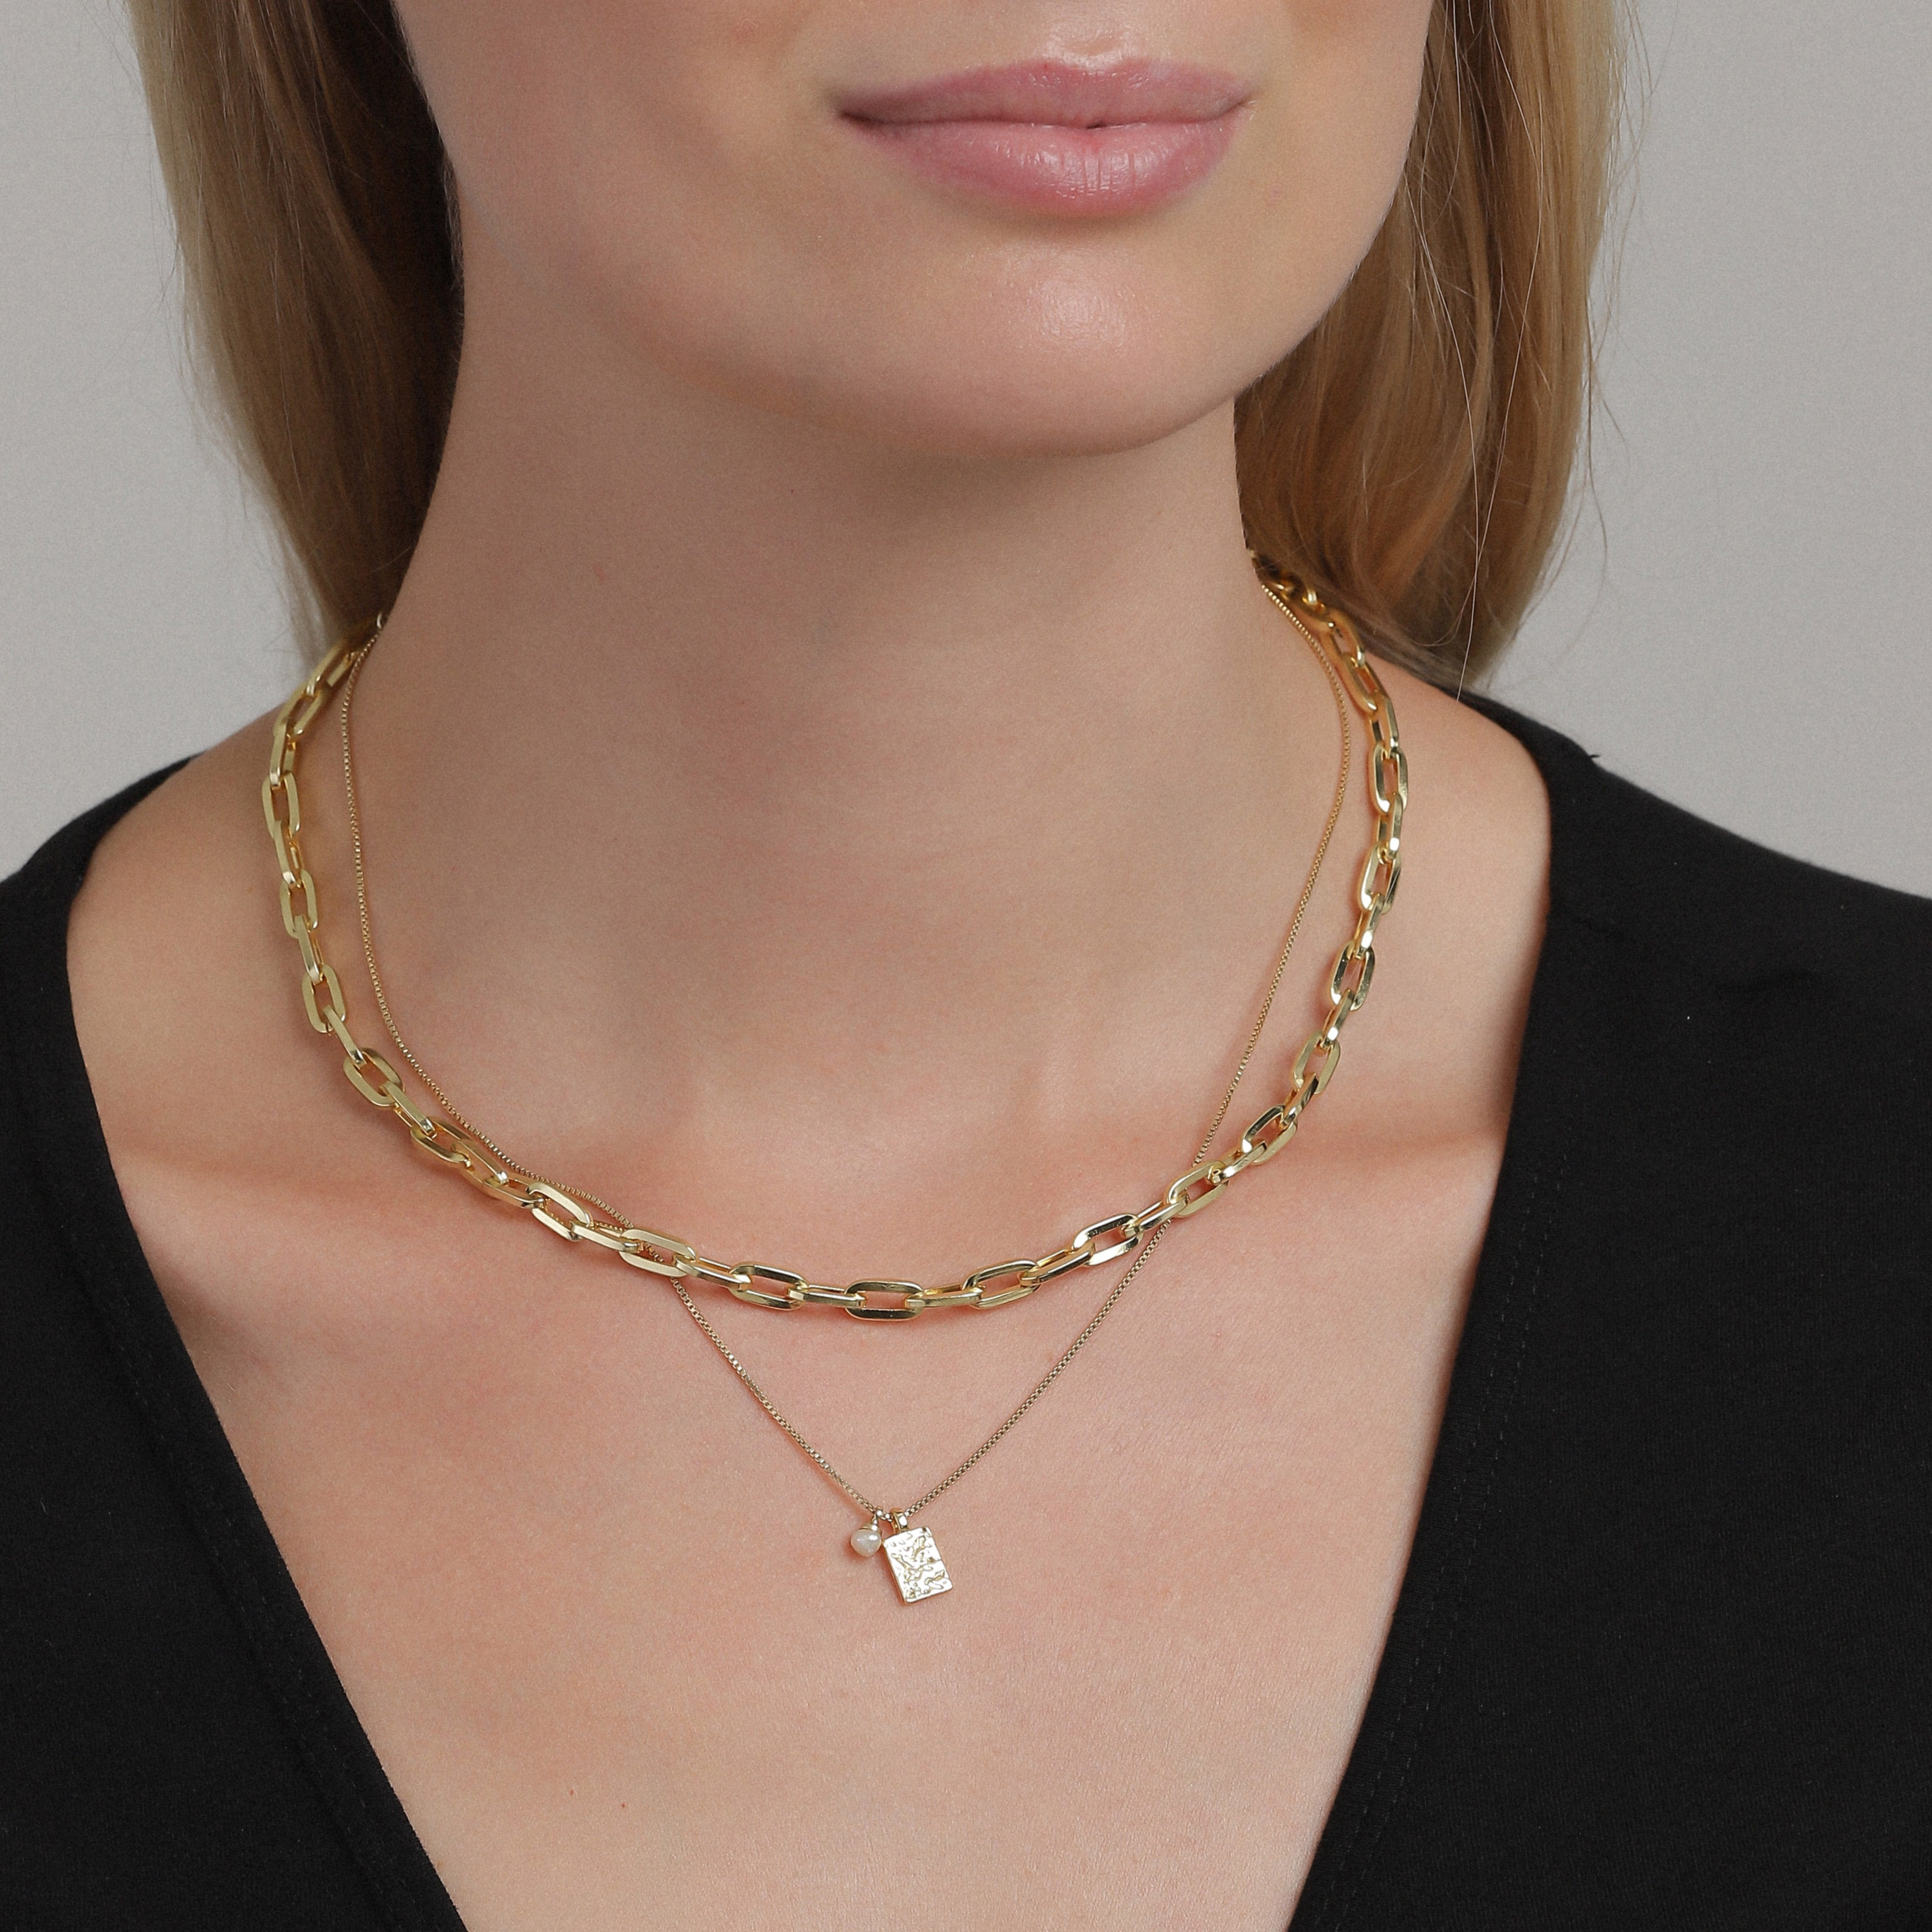 Necklace : Hana : Gold Plated : White